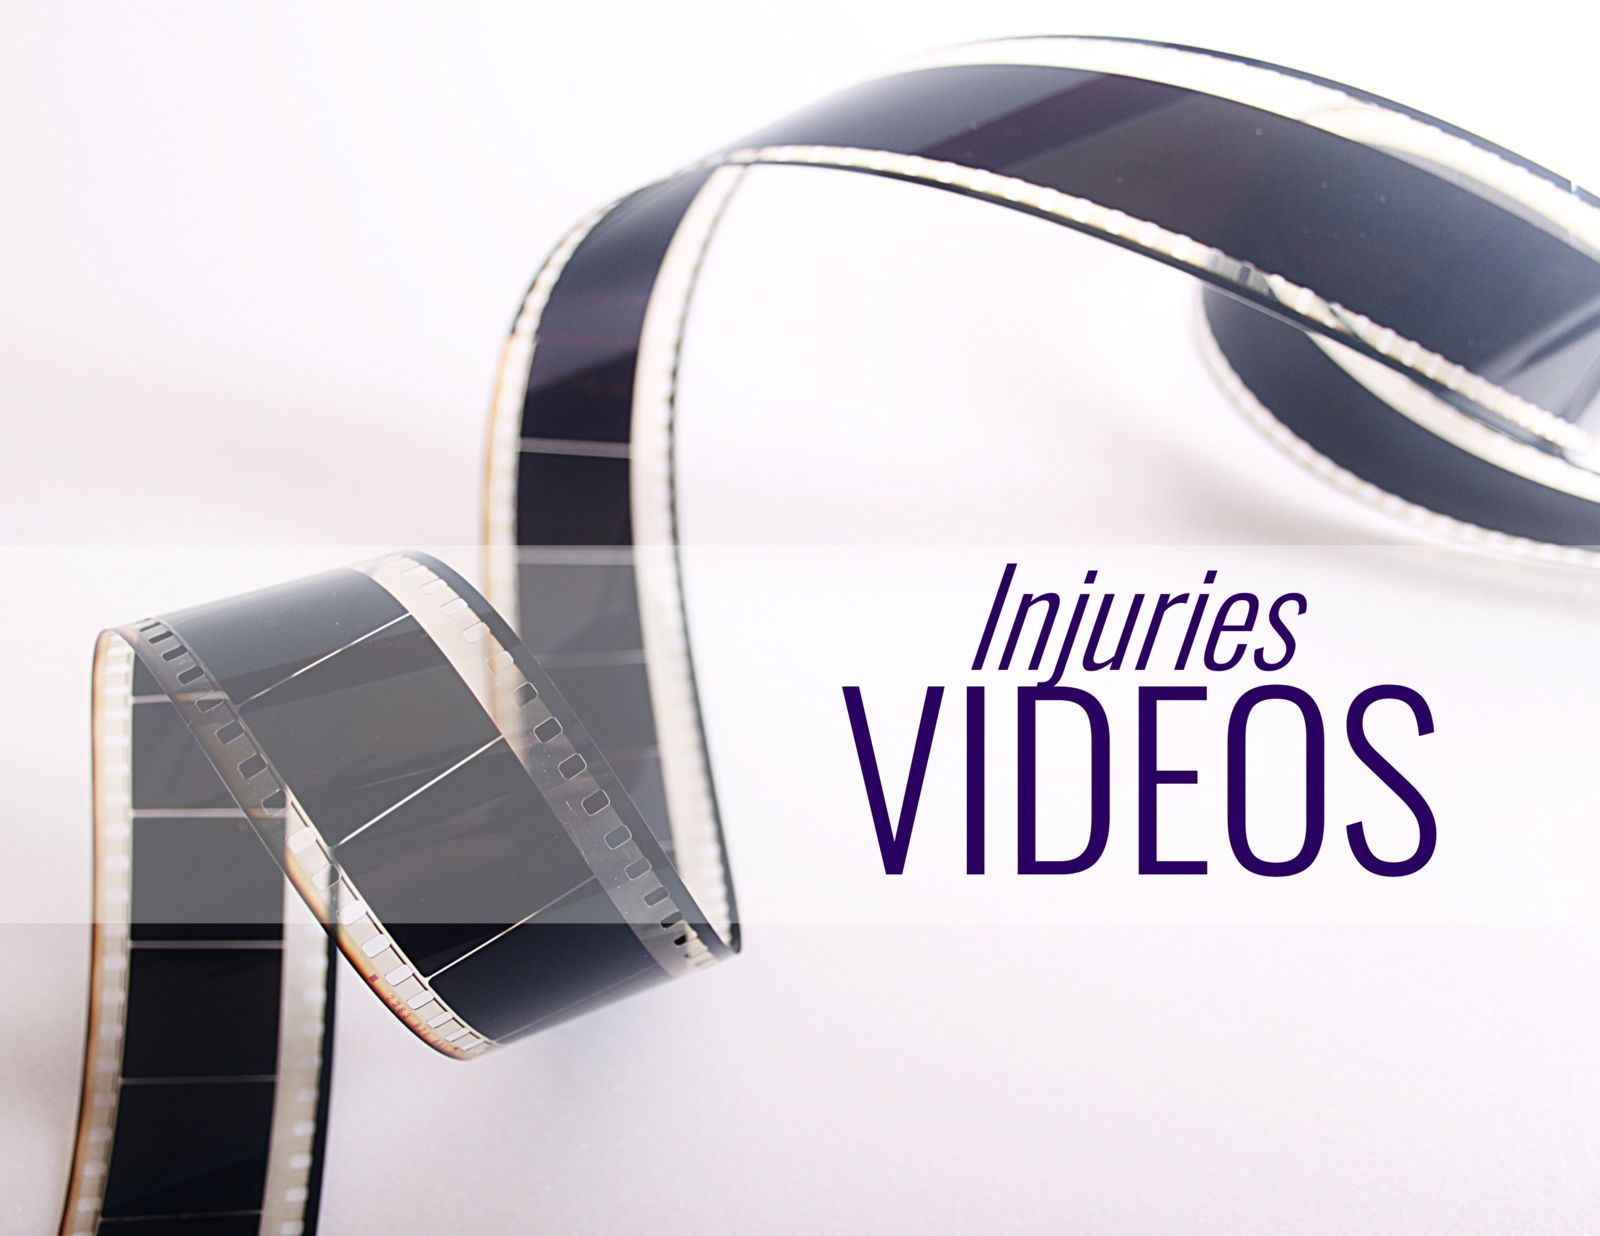 film reel and the words: Injuries Videos